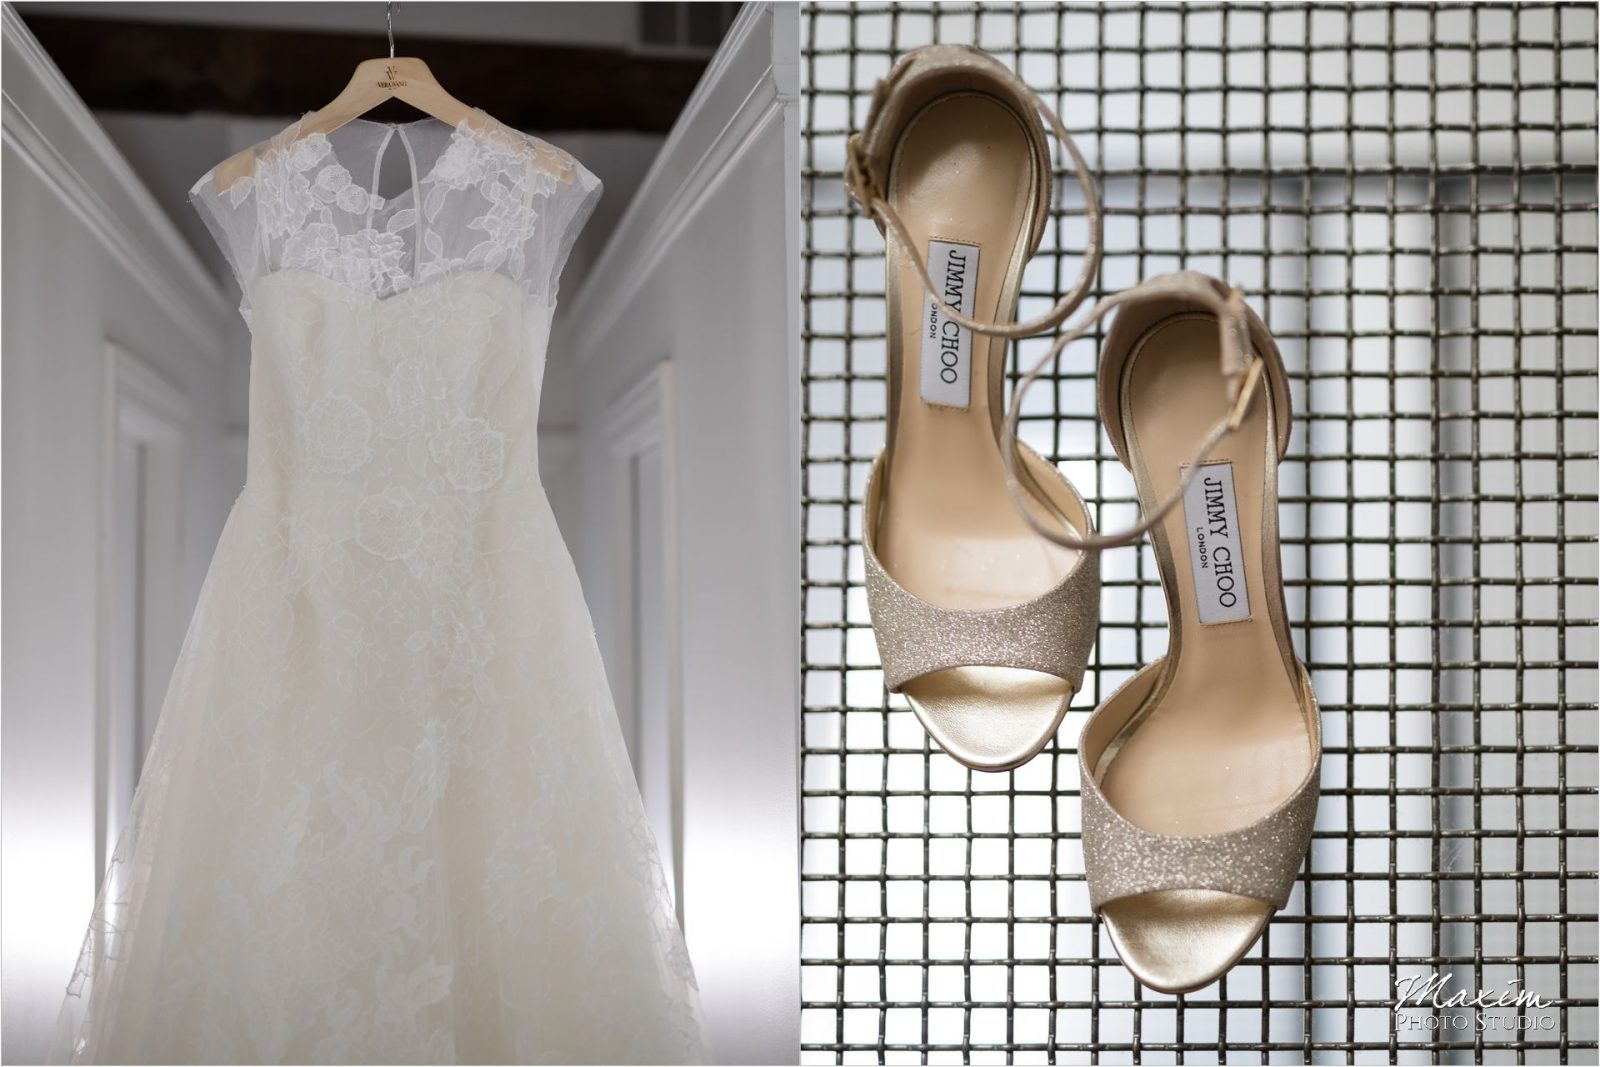 Jimmy Choo 21C Museum Hotel Cincinnati Wedding Preparations